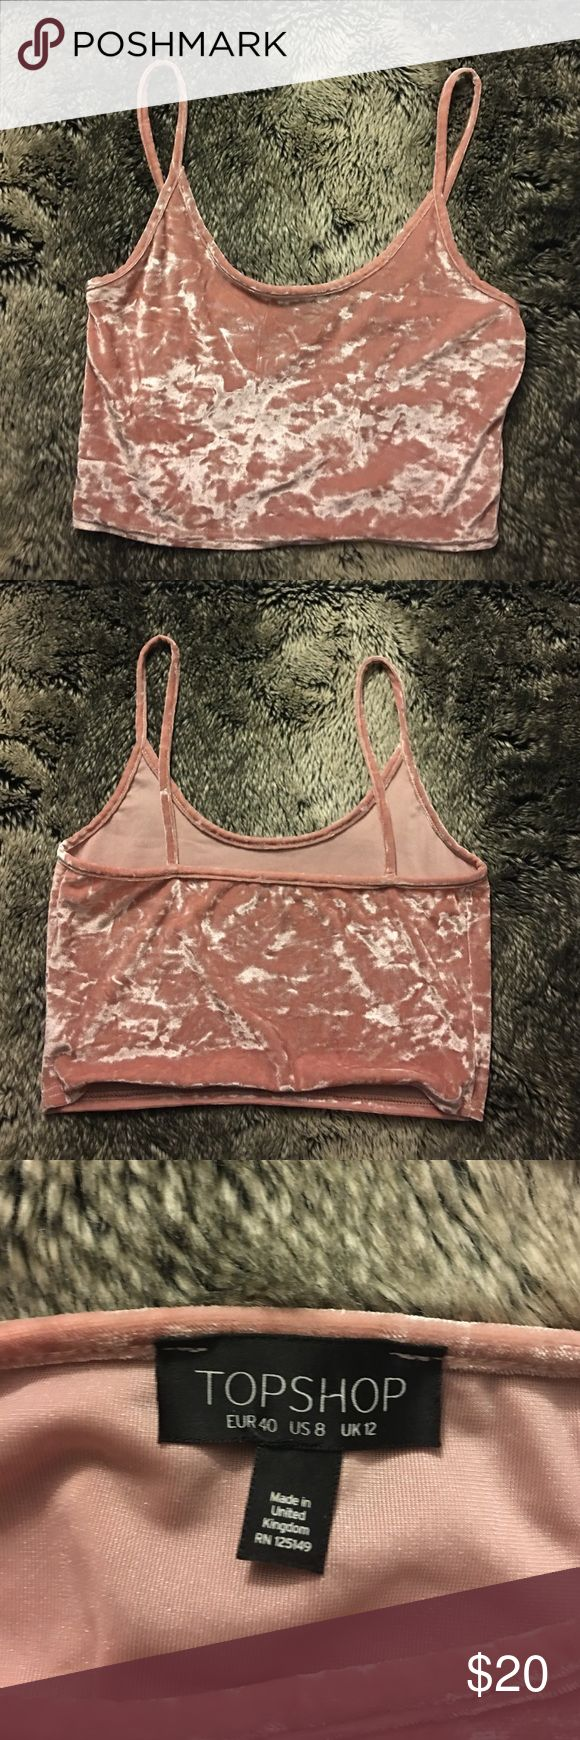 Topshop crushed pink velvet crop top new w/o tags | size US 8 | 🌸 Topshop Tops Crop Tops